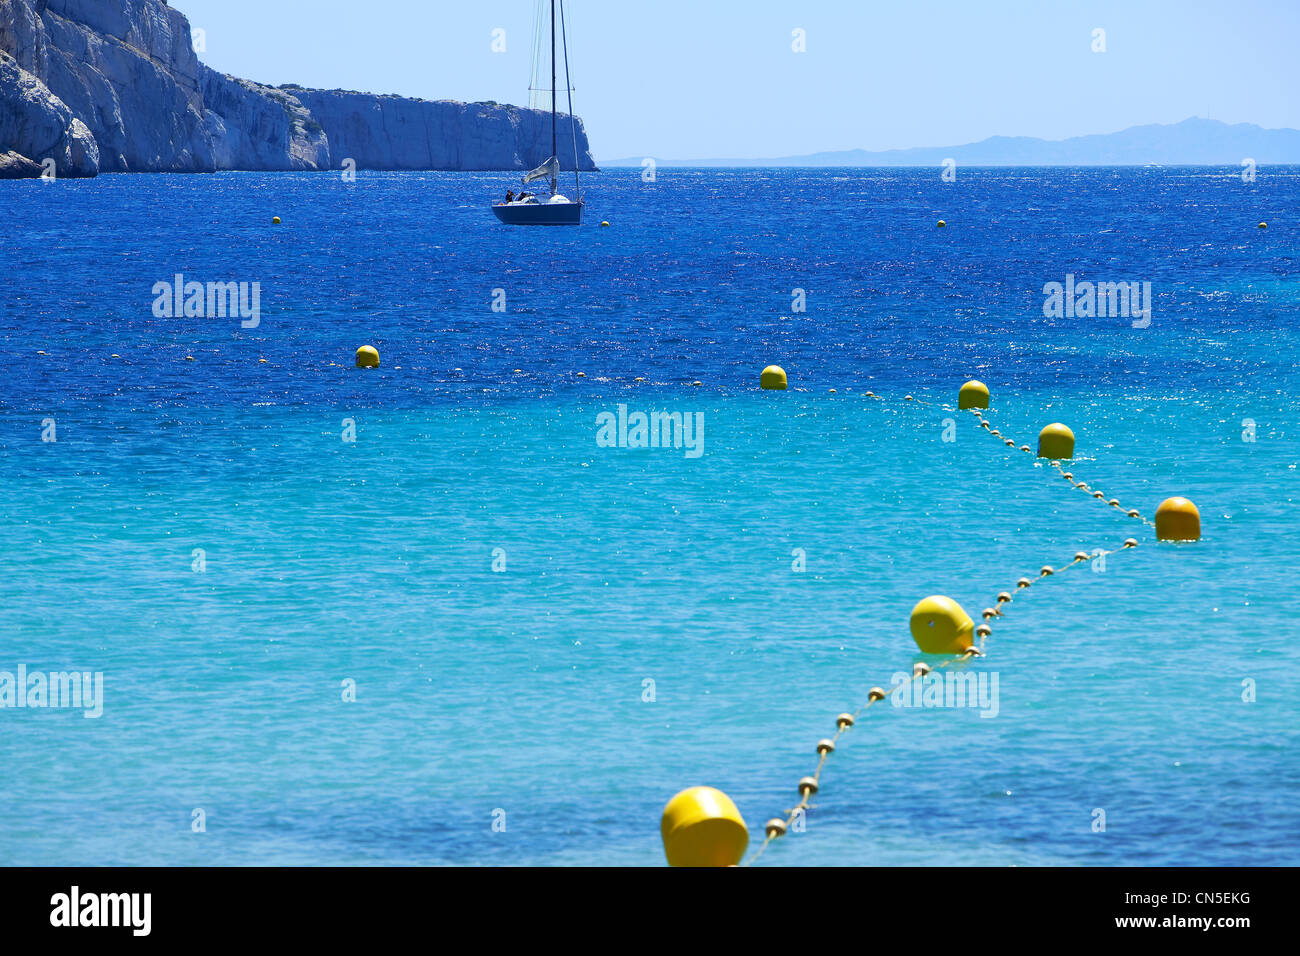 France, Bouches du Rhone, Marseille, 9th arrondissement, Calanque de Sormiou - Stock Image